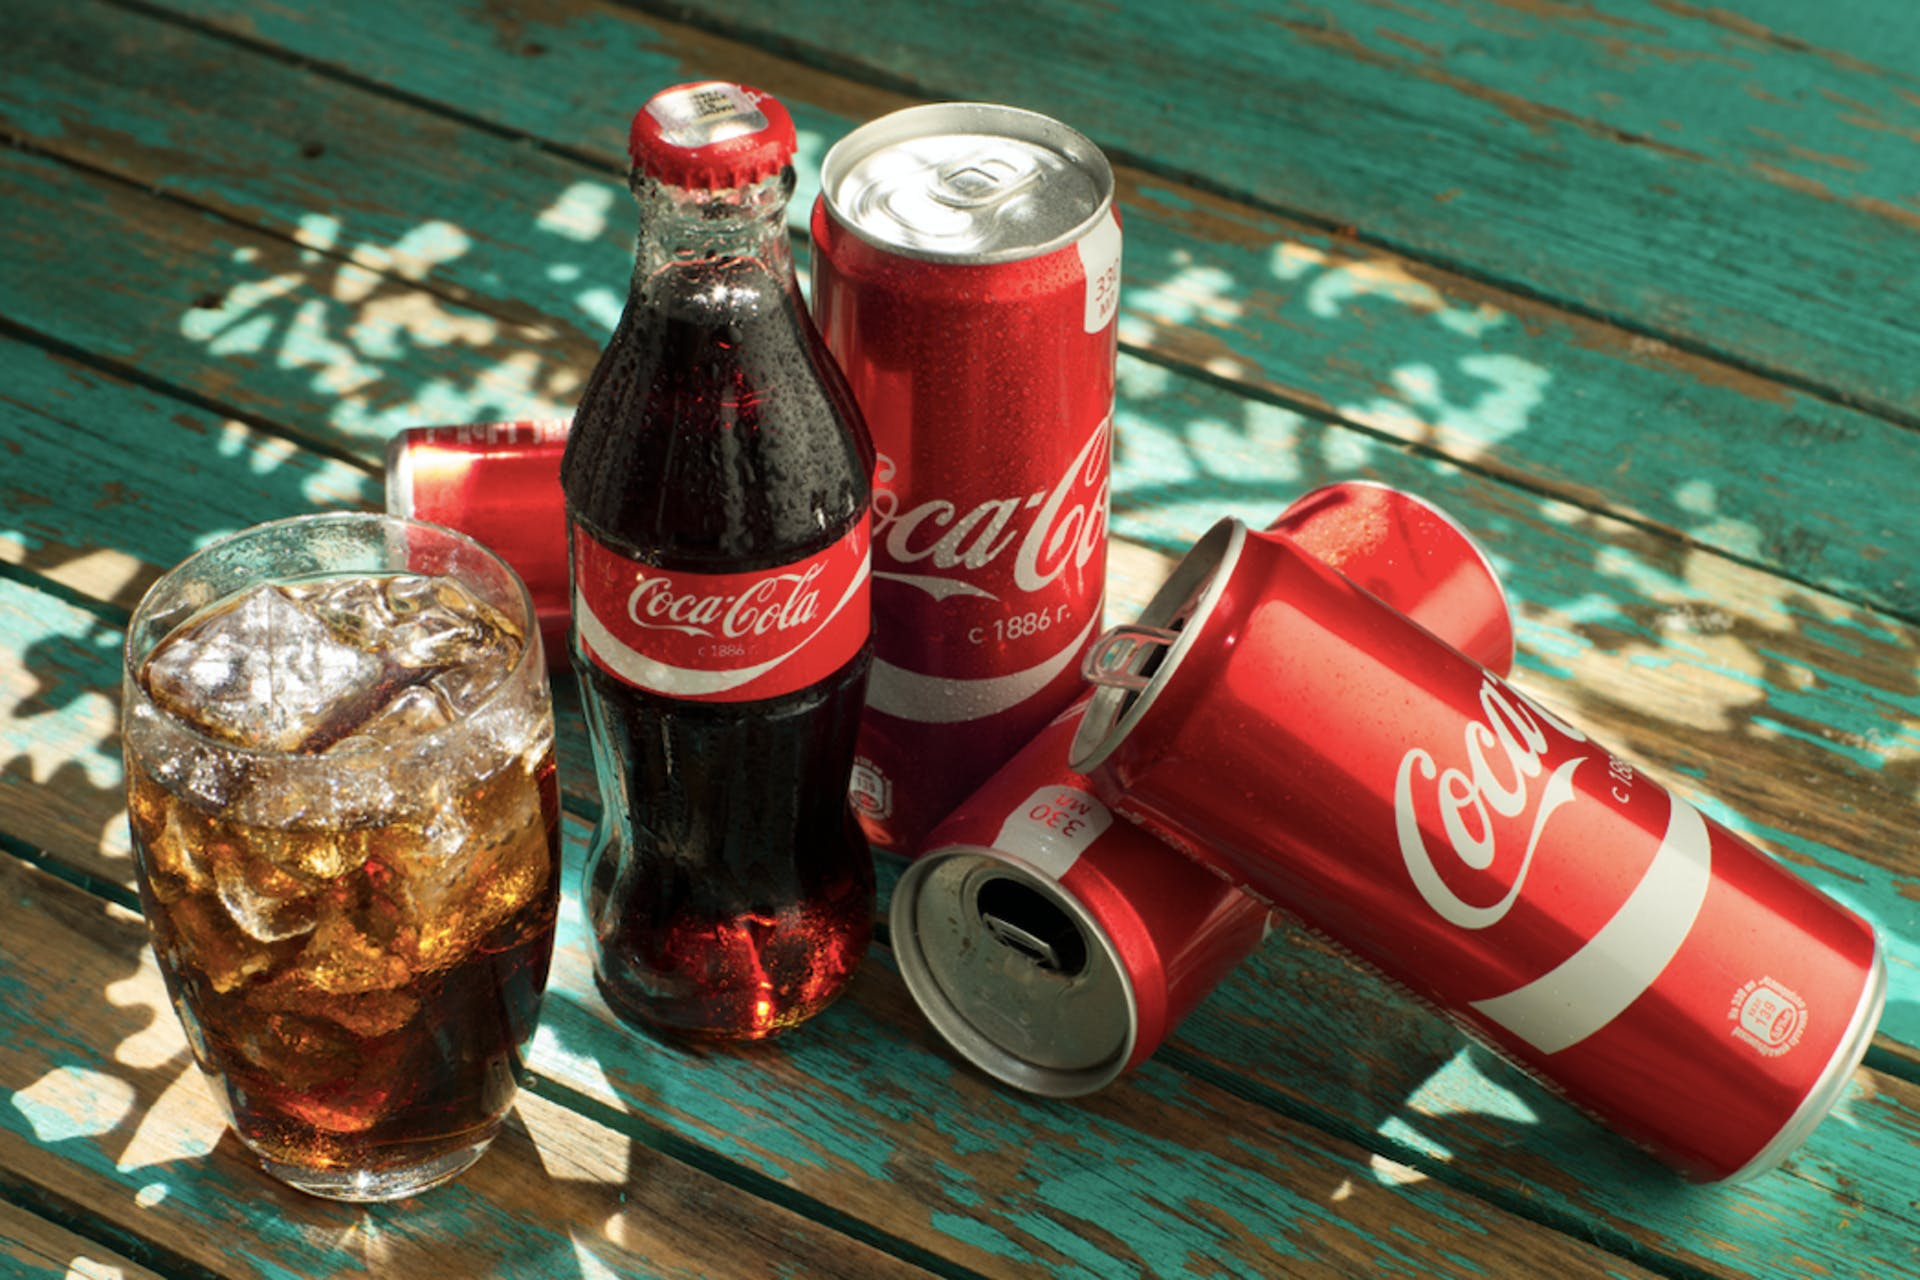 coca-cola can and glass bottle on a wooden table and glass with ice